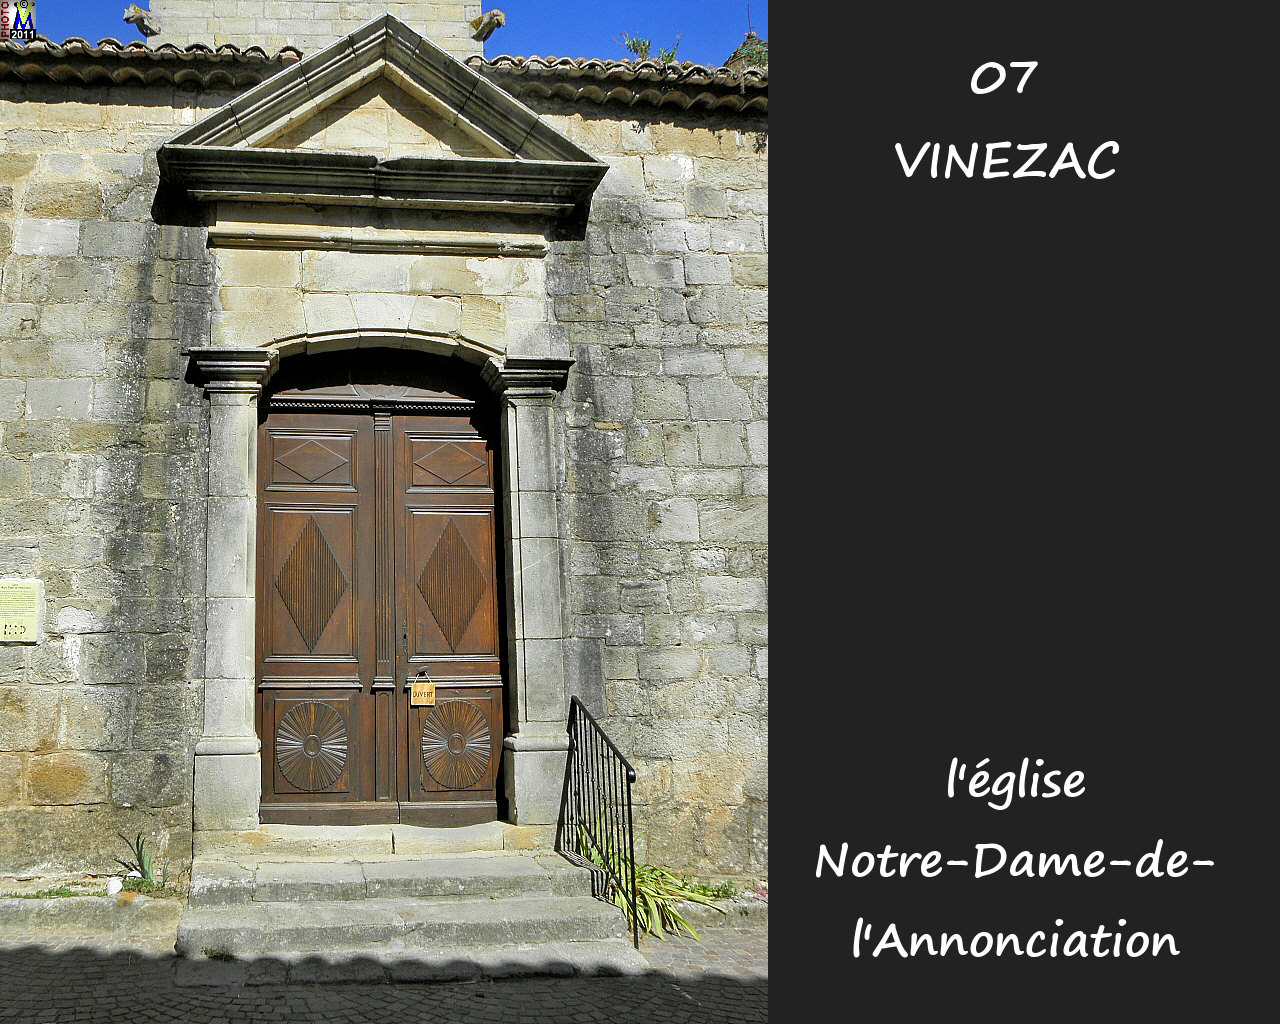 07VINEZAC_eglise_120.jpg